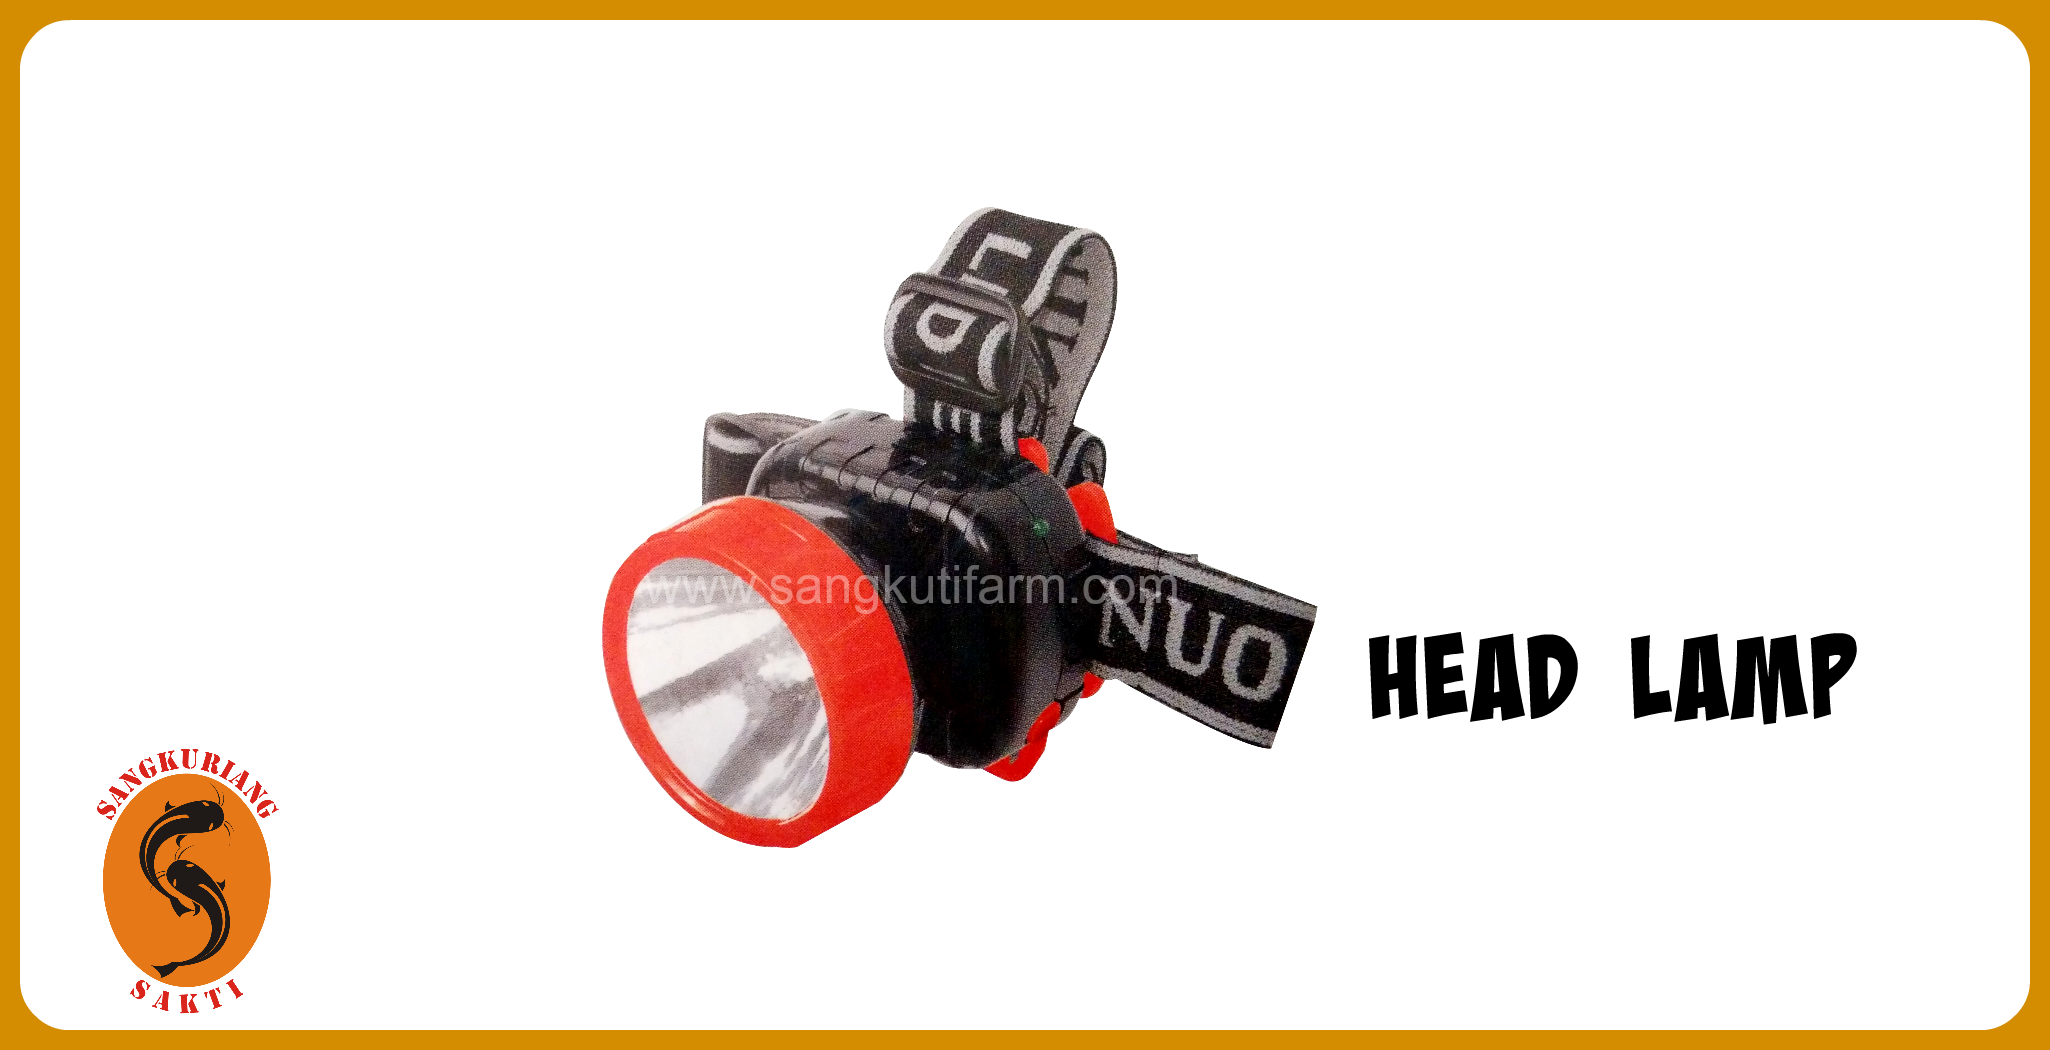 jual HEAD LAMP